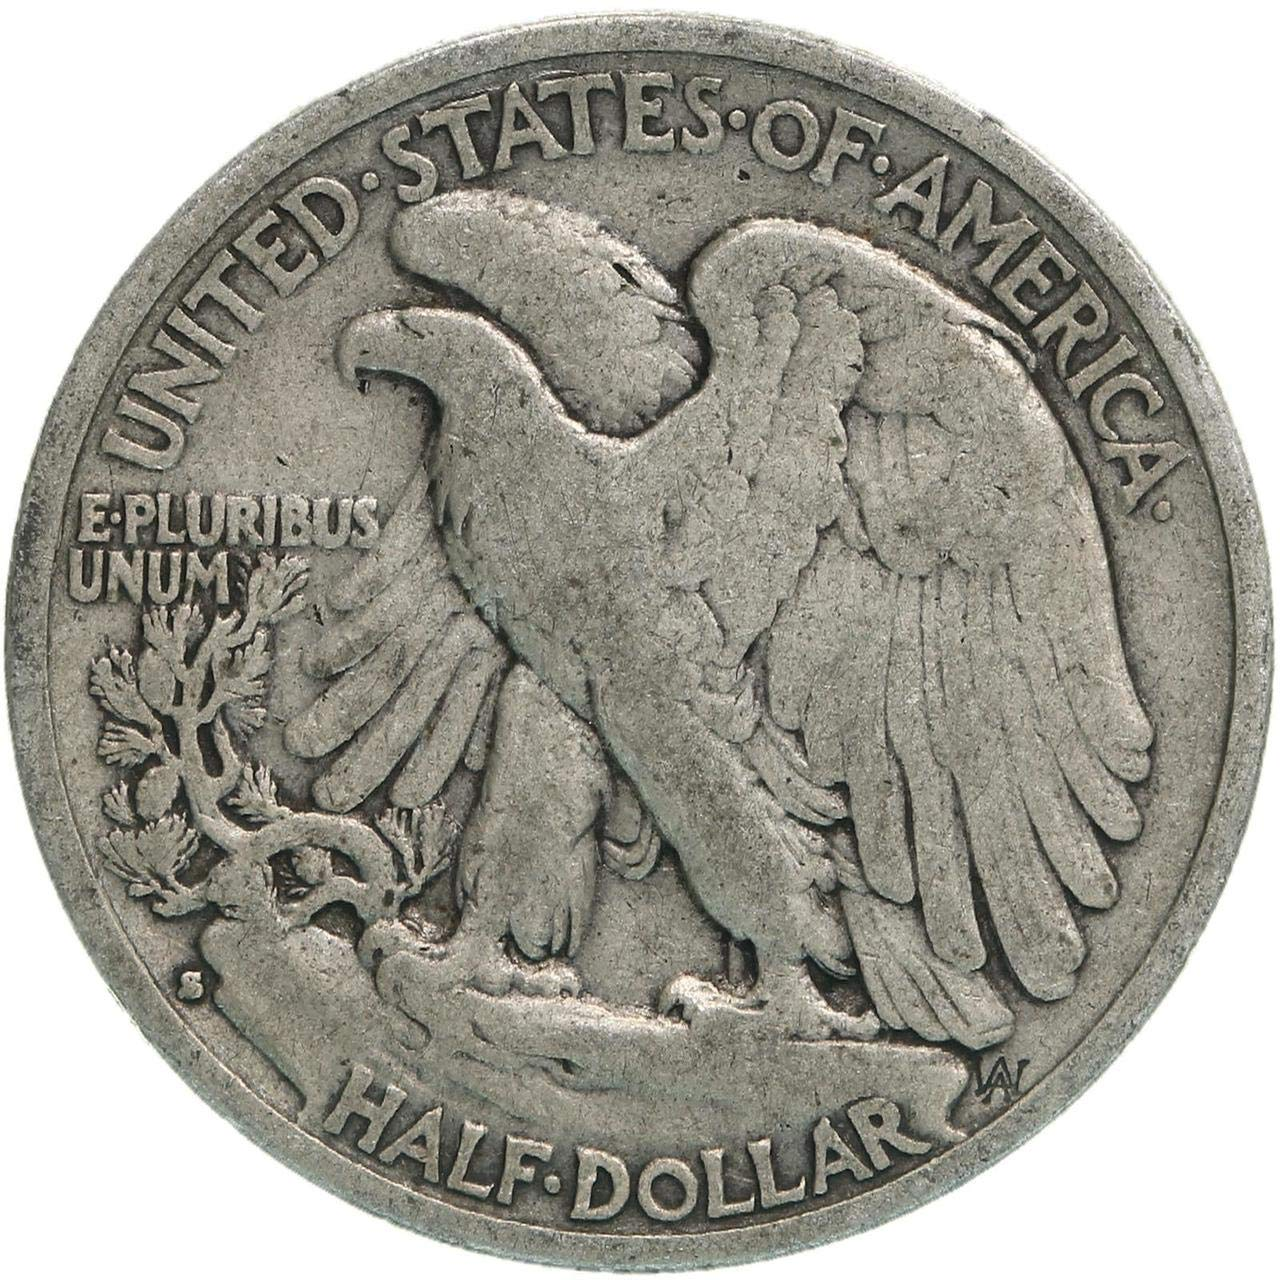 1935 S Walking Liberty 90/% Silver Half Dollar Grades Fine to XF with Full Rim Date and Motto US Mint